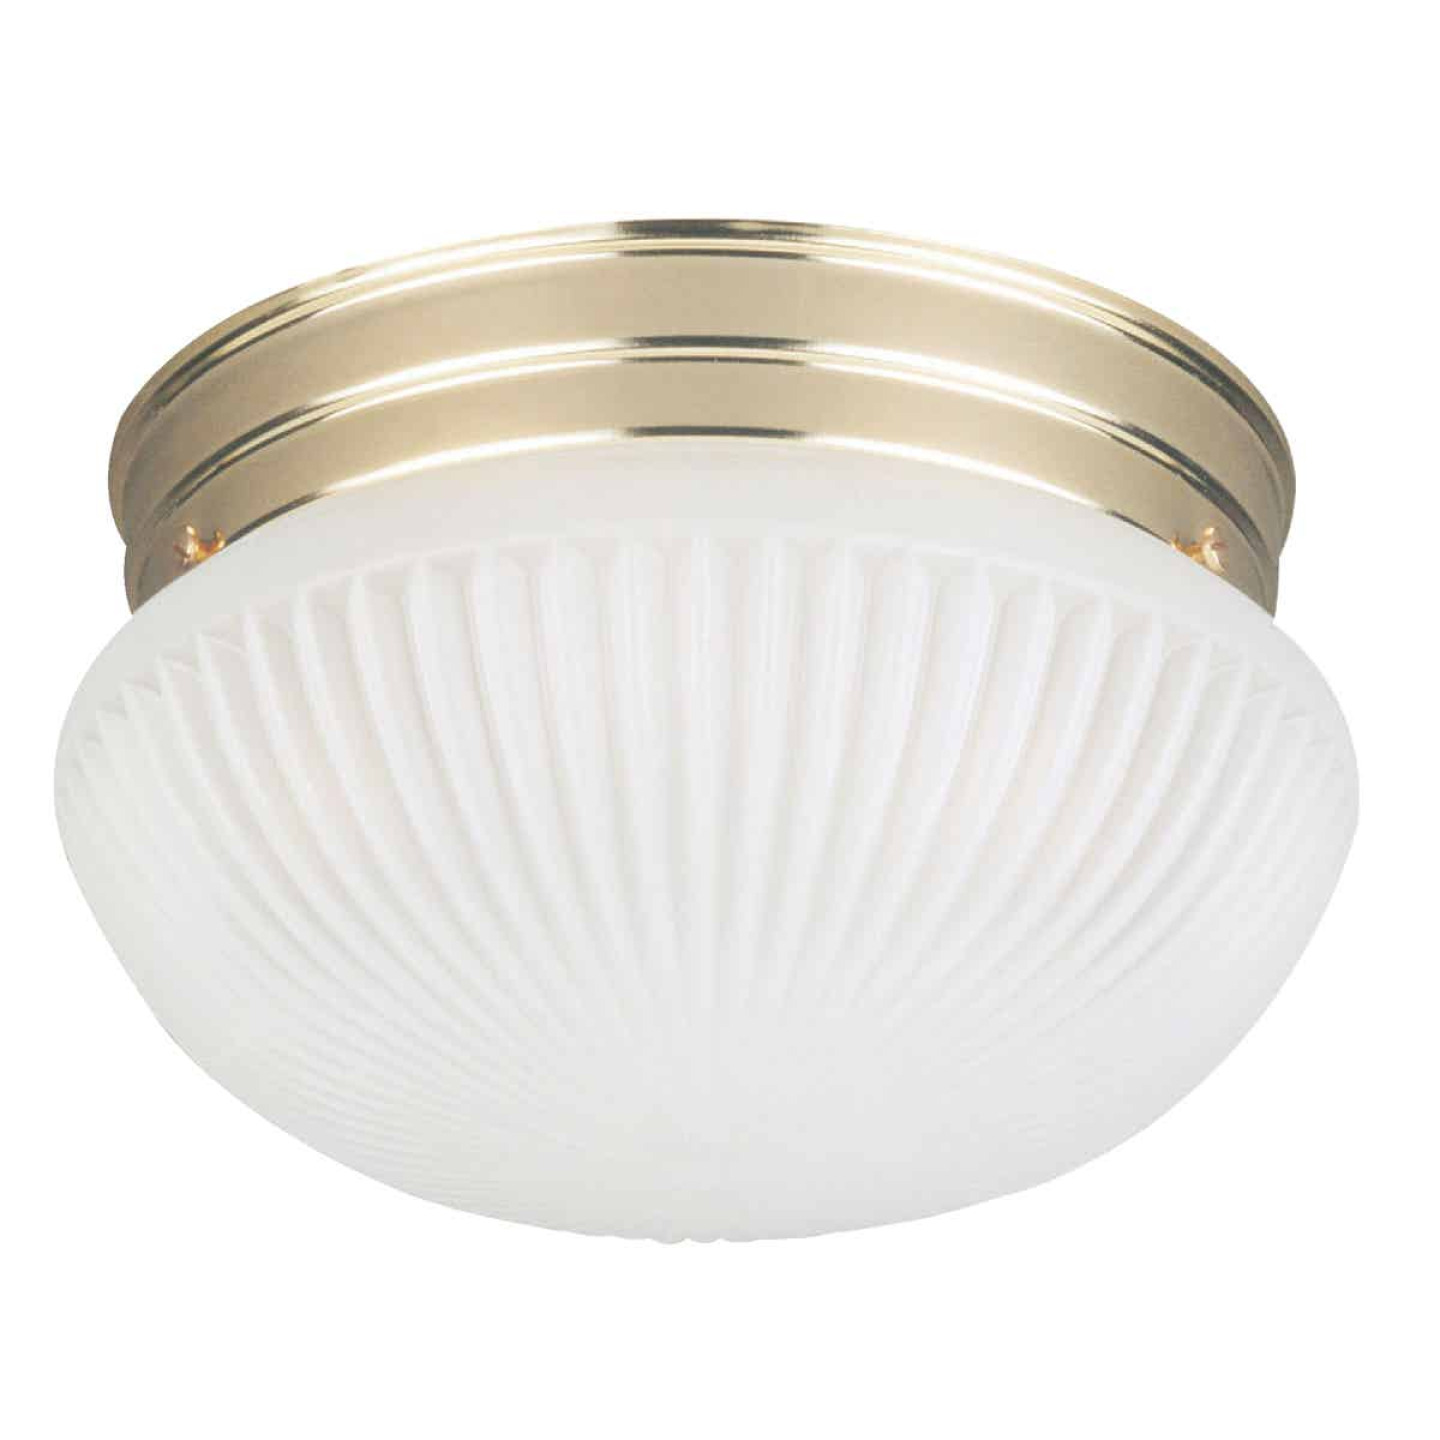 Home Impressions 9-1/2 In. Polished Brass Incandescent Flush Mount Ceiling Light Fixture Image 1